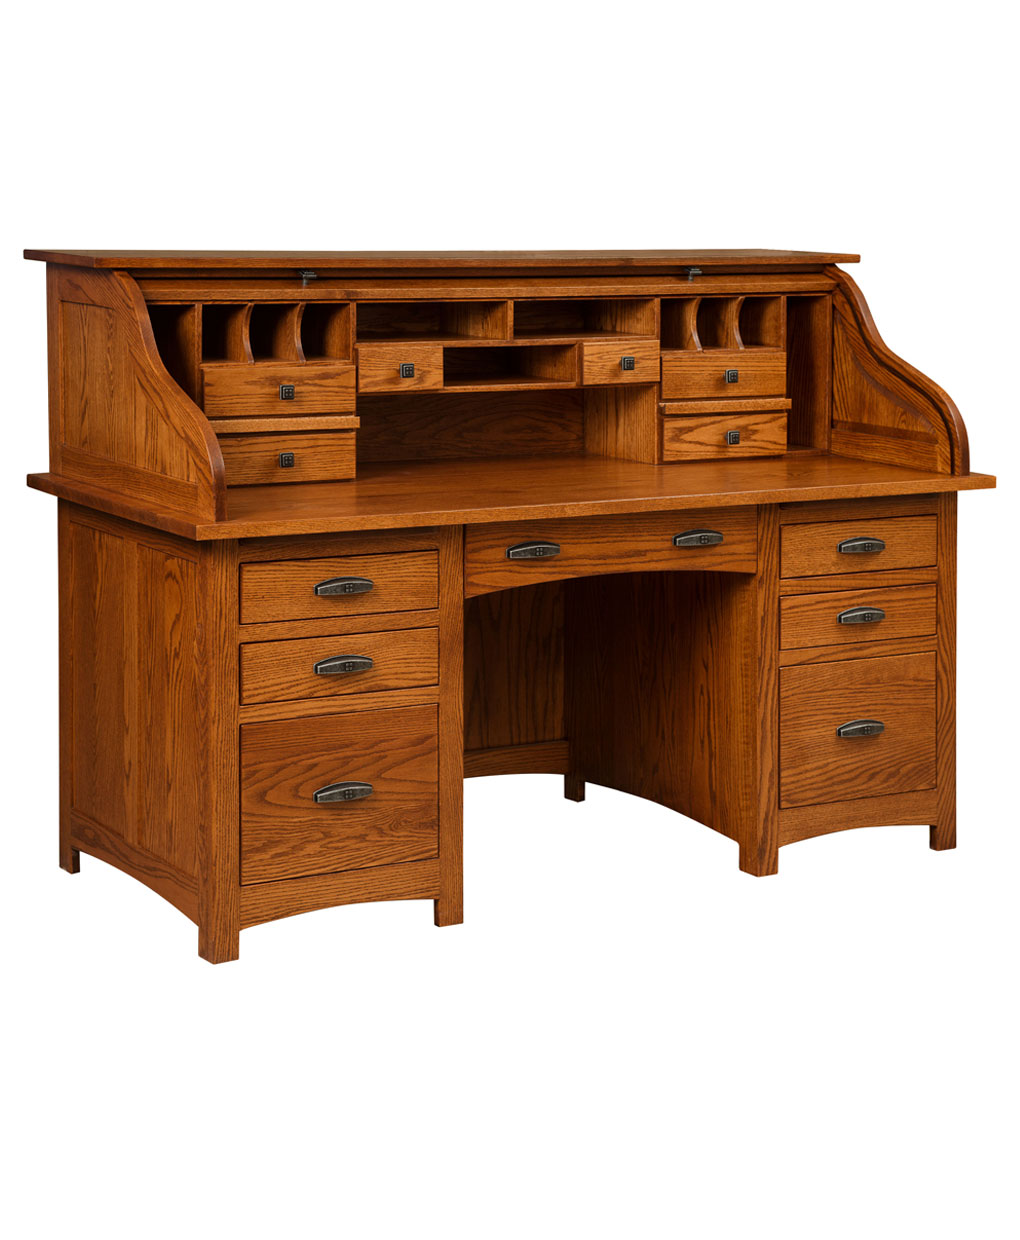 Oakwood Rolltop Desk Amish Direct Furniture